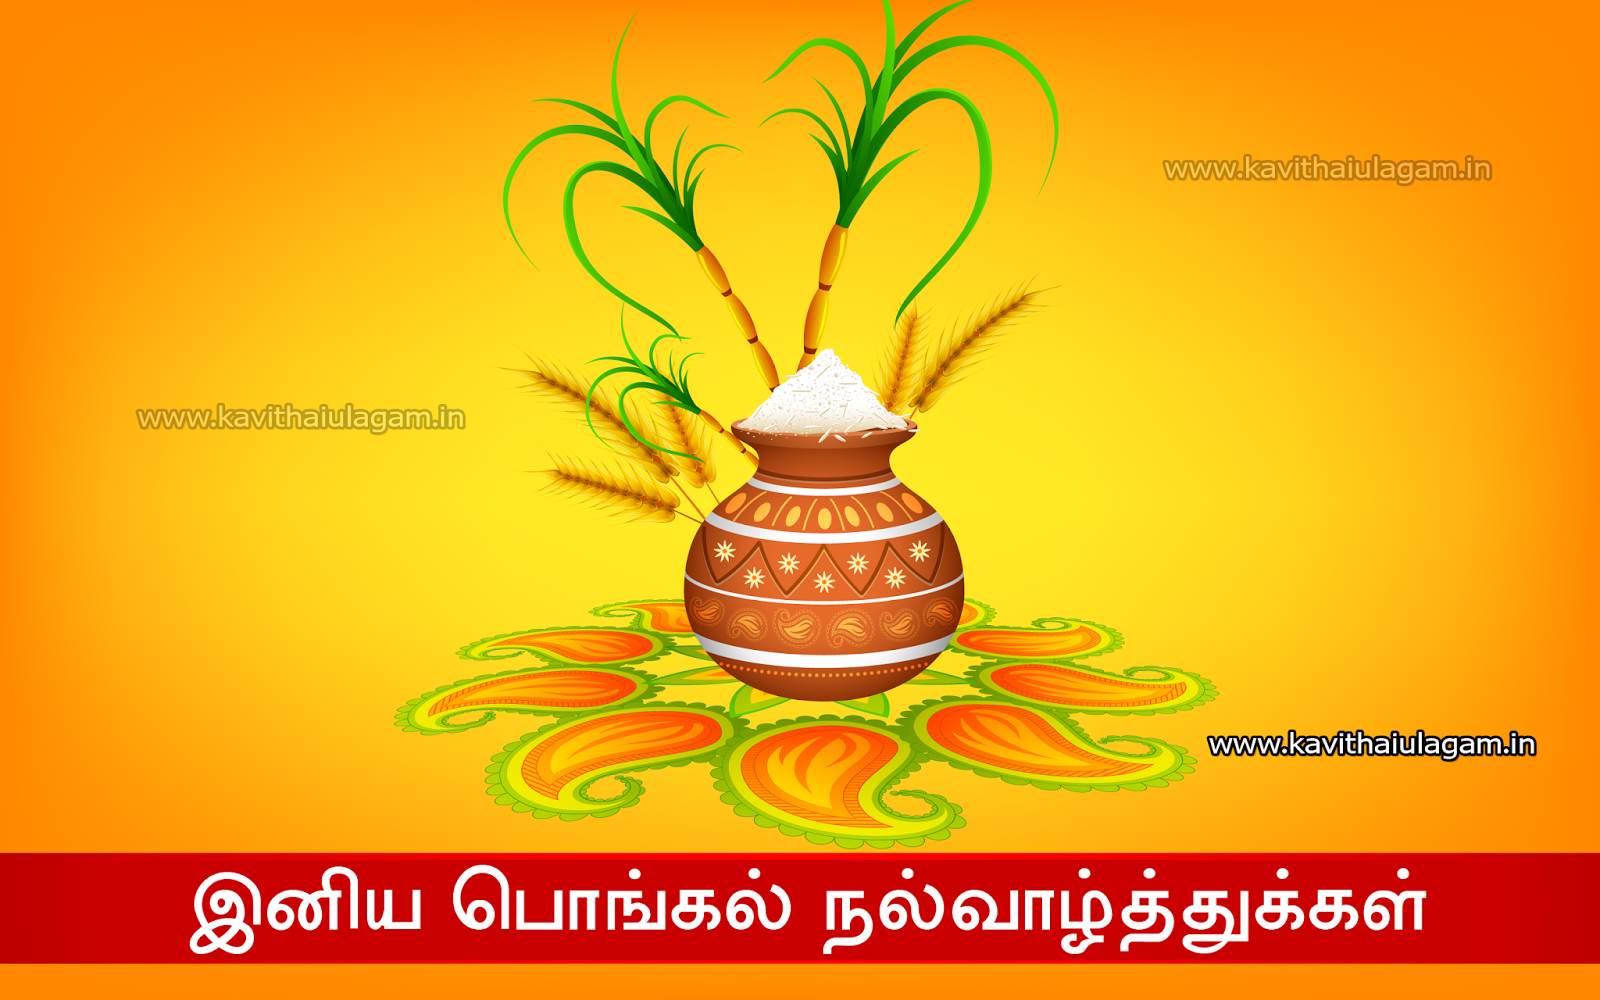 New pongal kavithaigal greetings for wishing friends kavithaigal new pongal kavithaigal greetings for wishing friends m4hsunfo Gallery